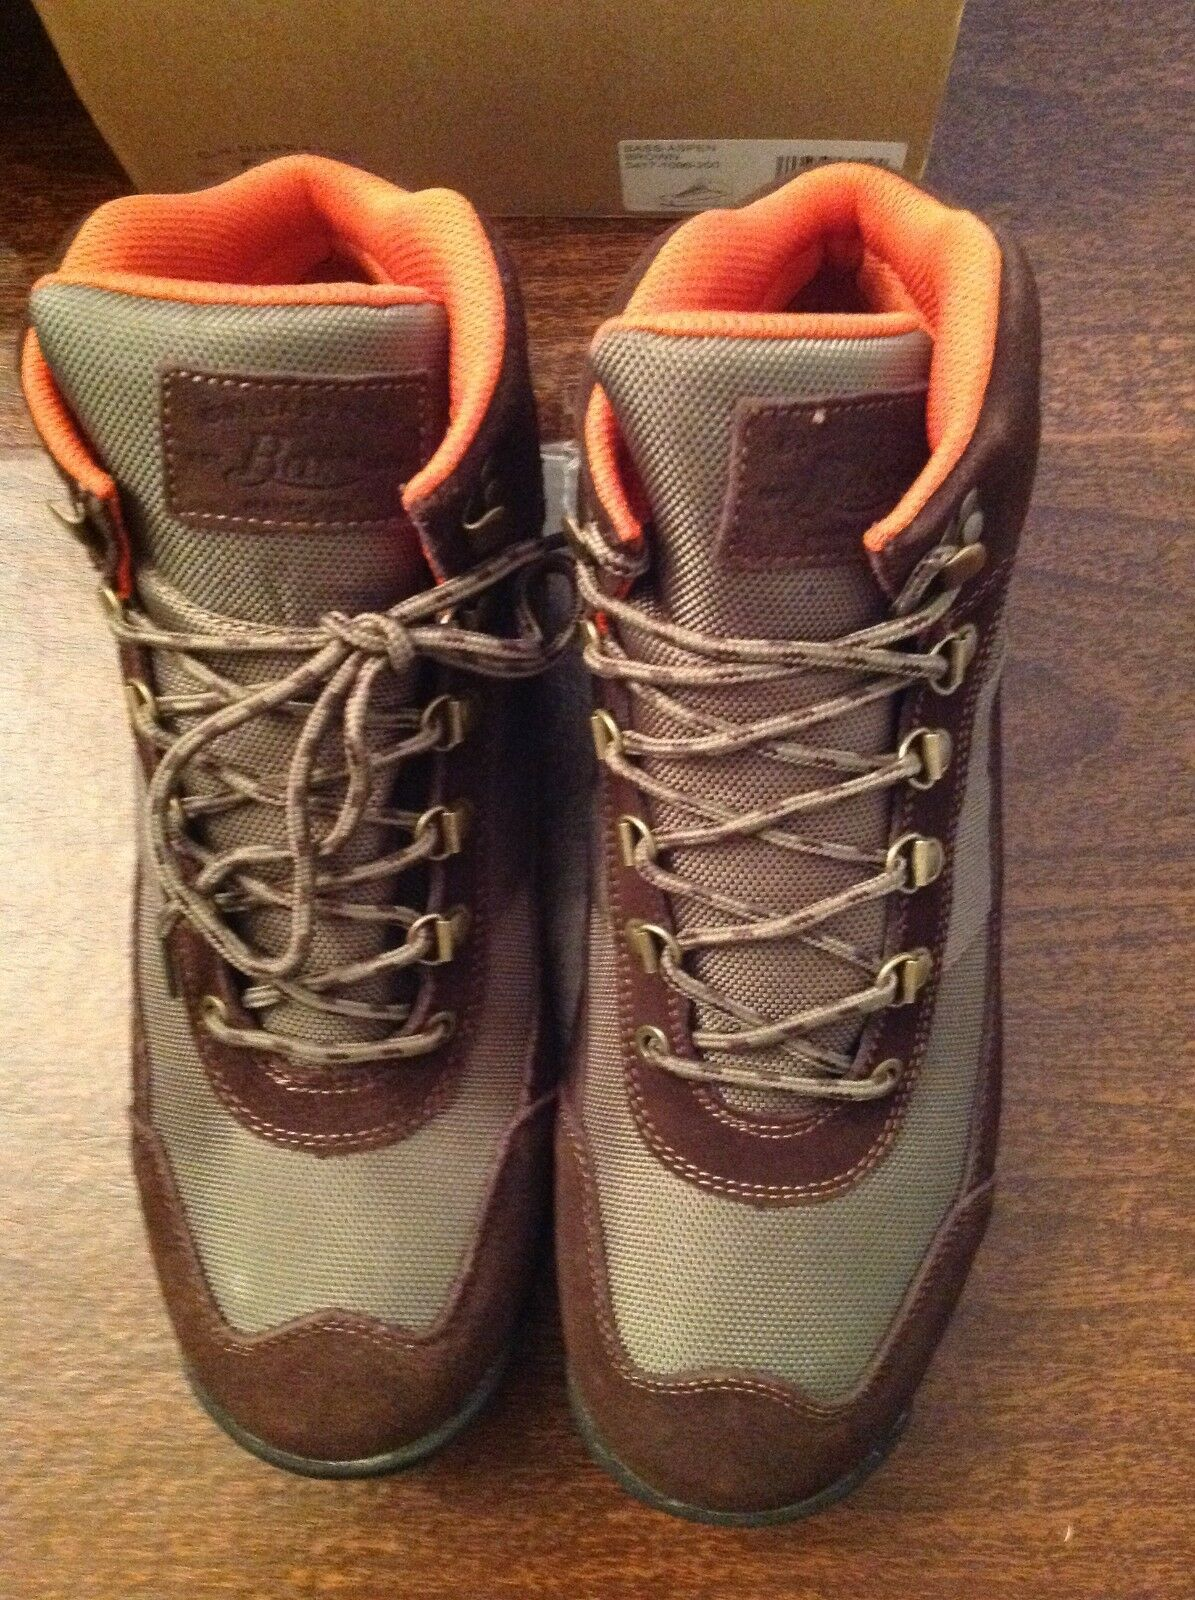 G. H. Bass Men's Brown Aspen Hikers Boots  Size: 11.5M   New in Box